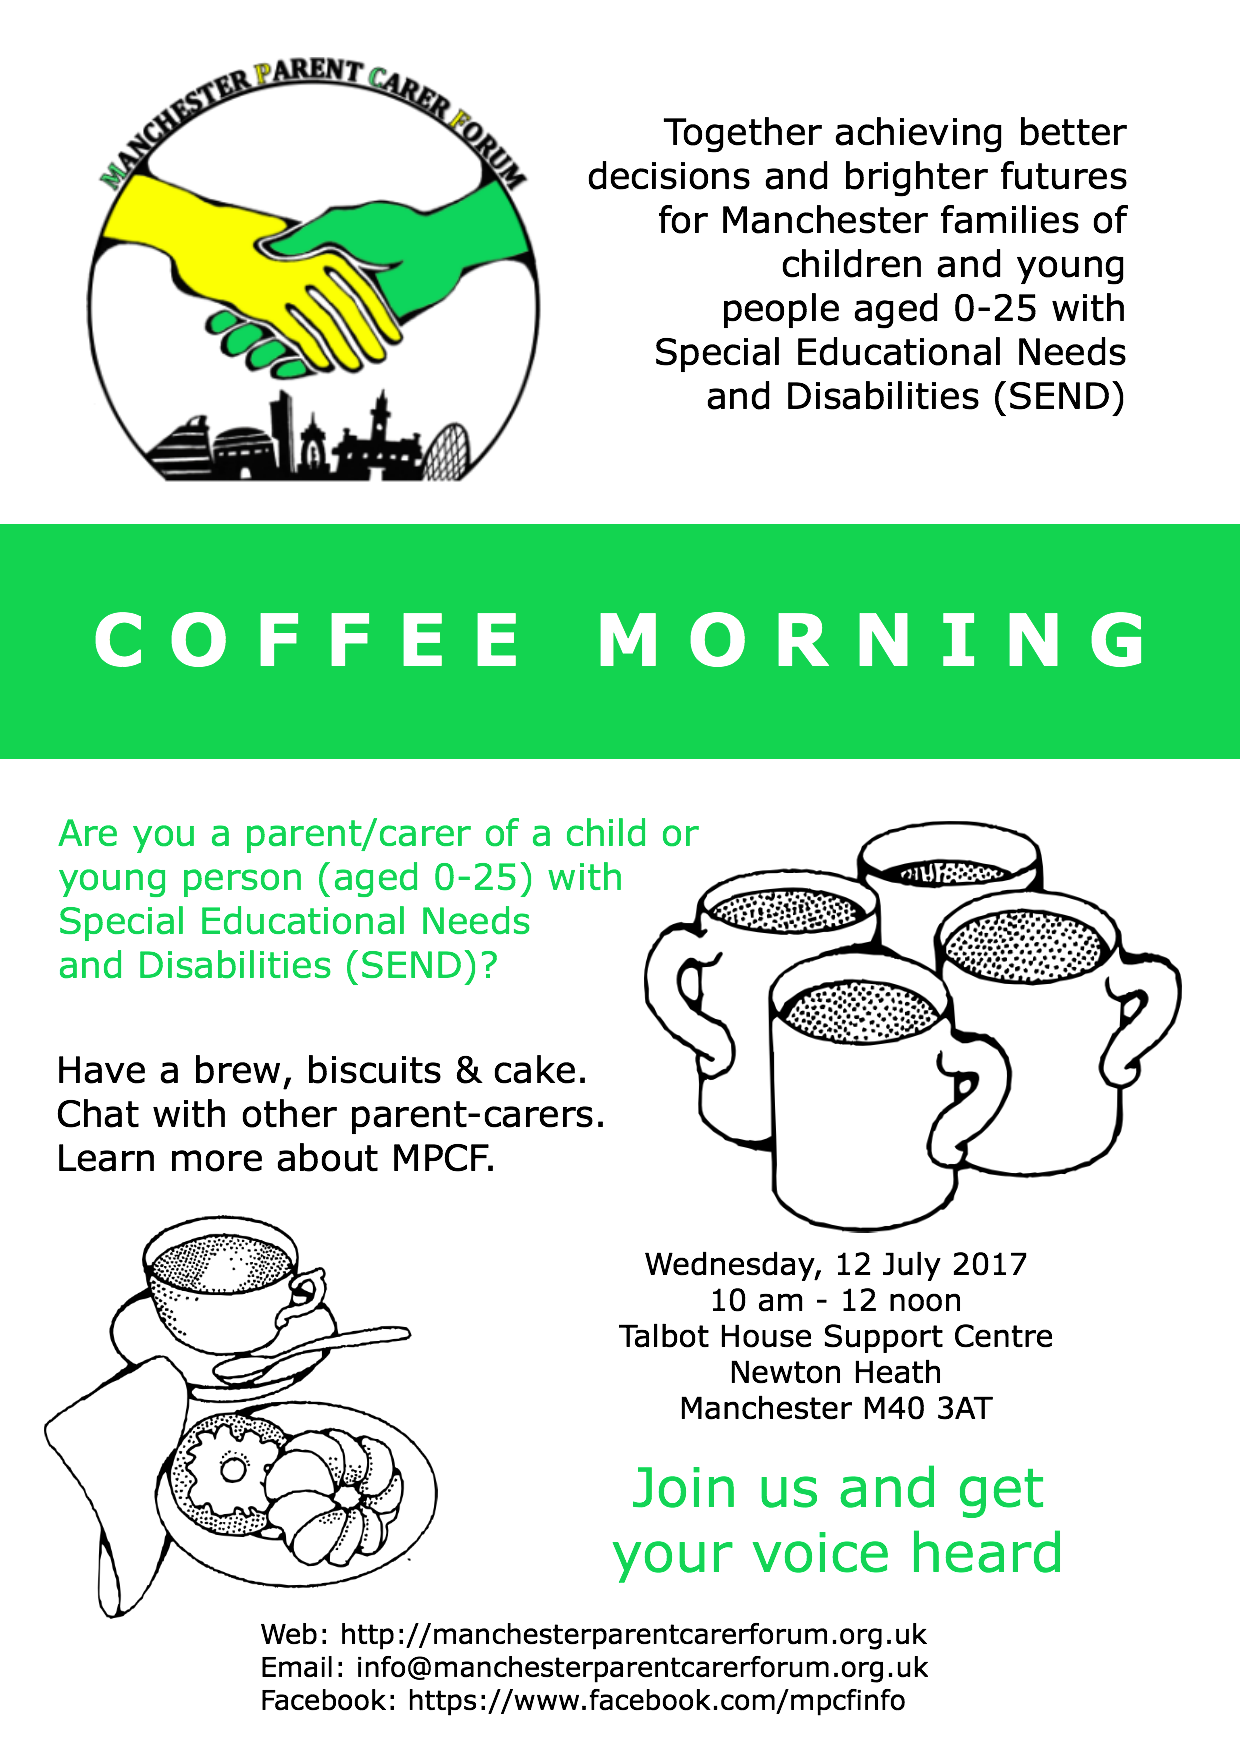 flyer for the MPCF Coffee Morning at Talbot House Support Centre on 12 July 2017